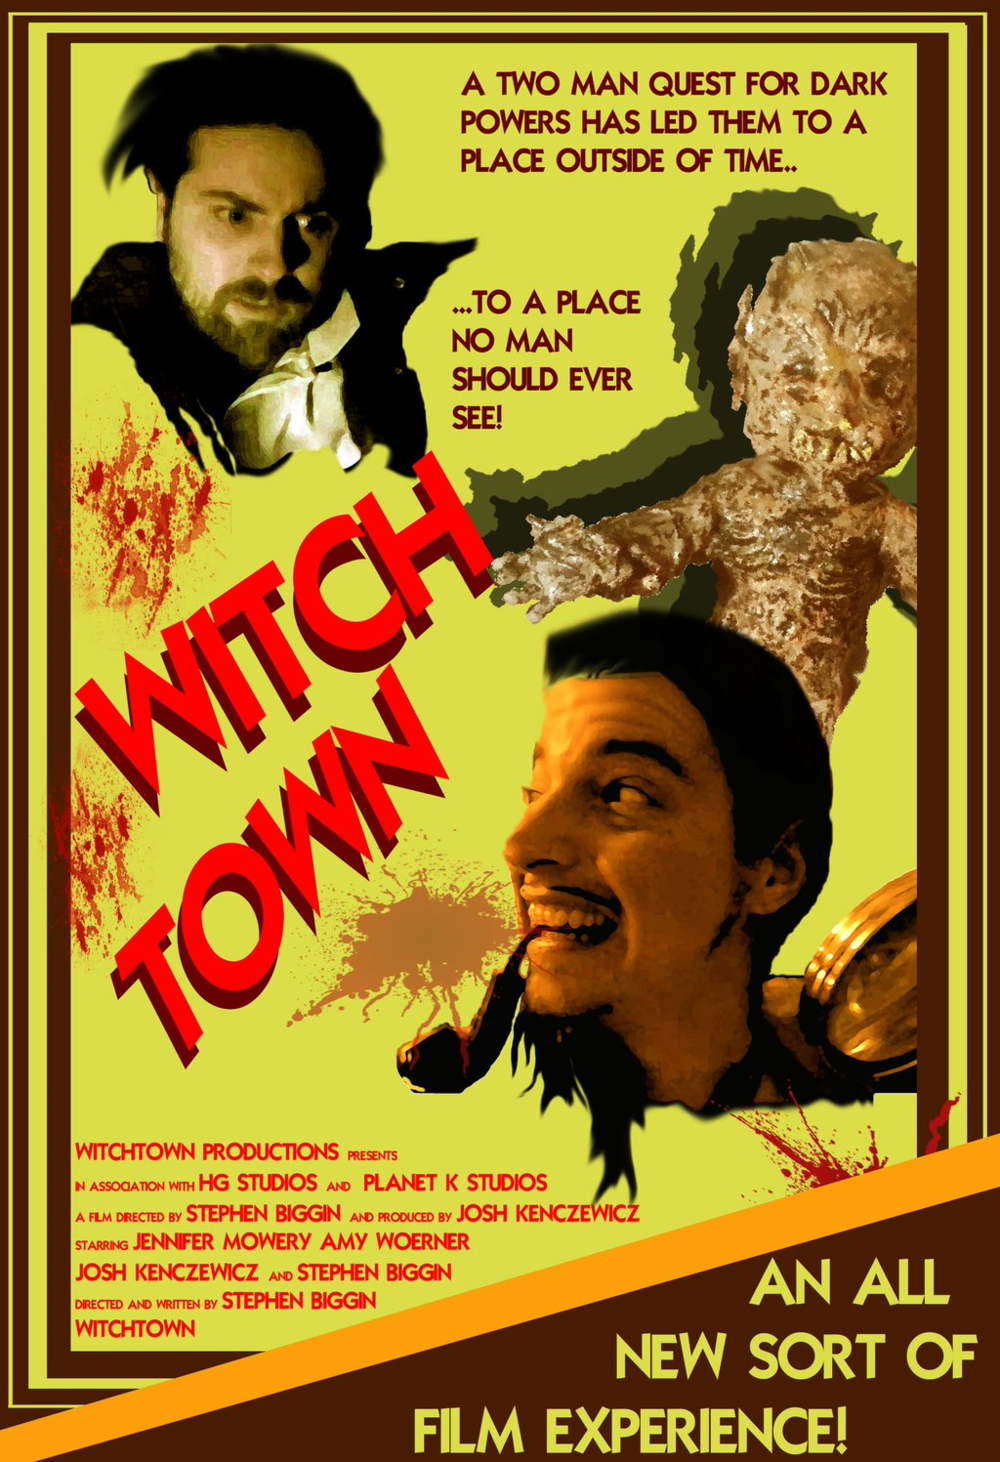 WITCH POSTER FINAL 1.png